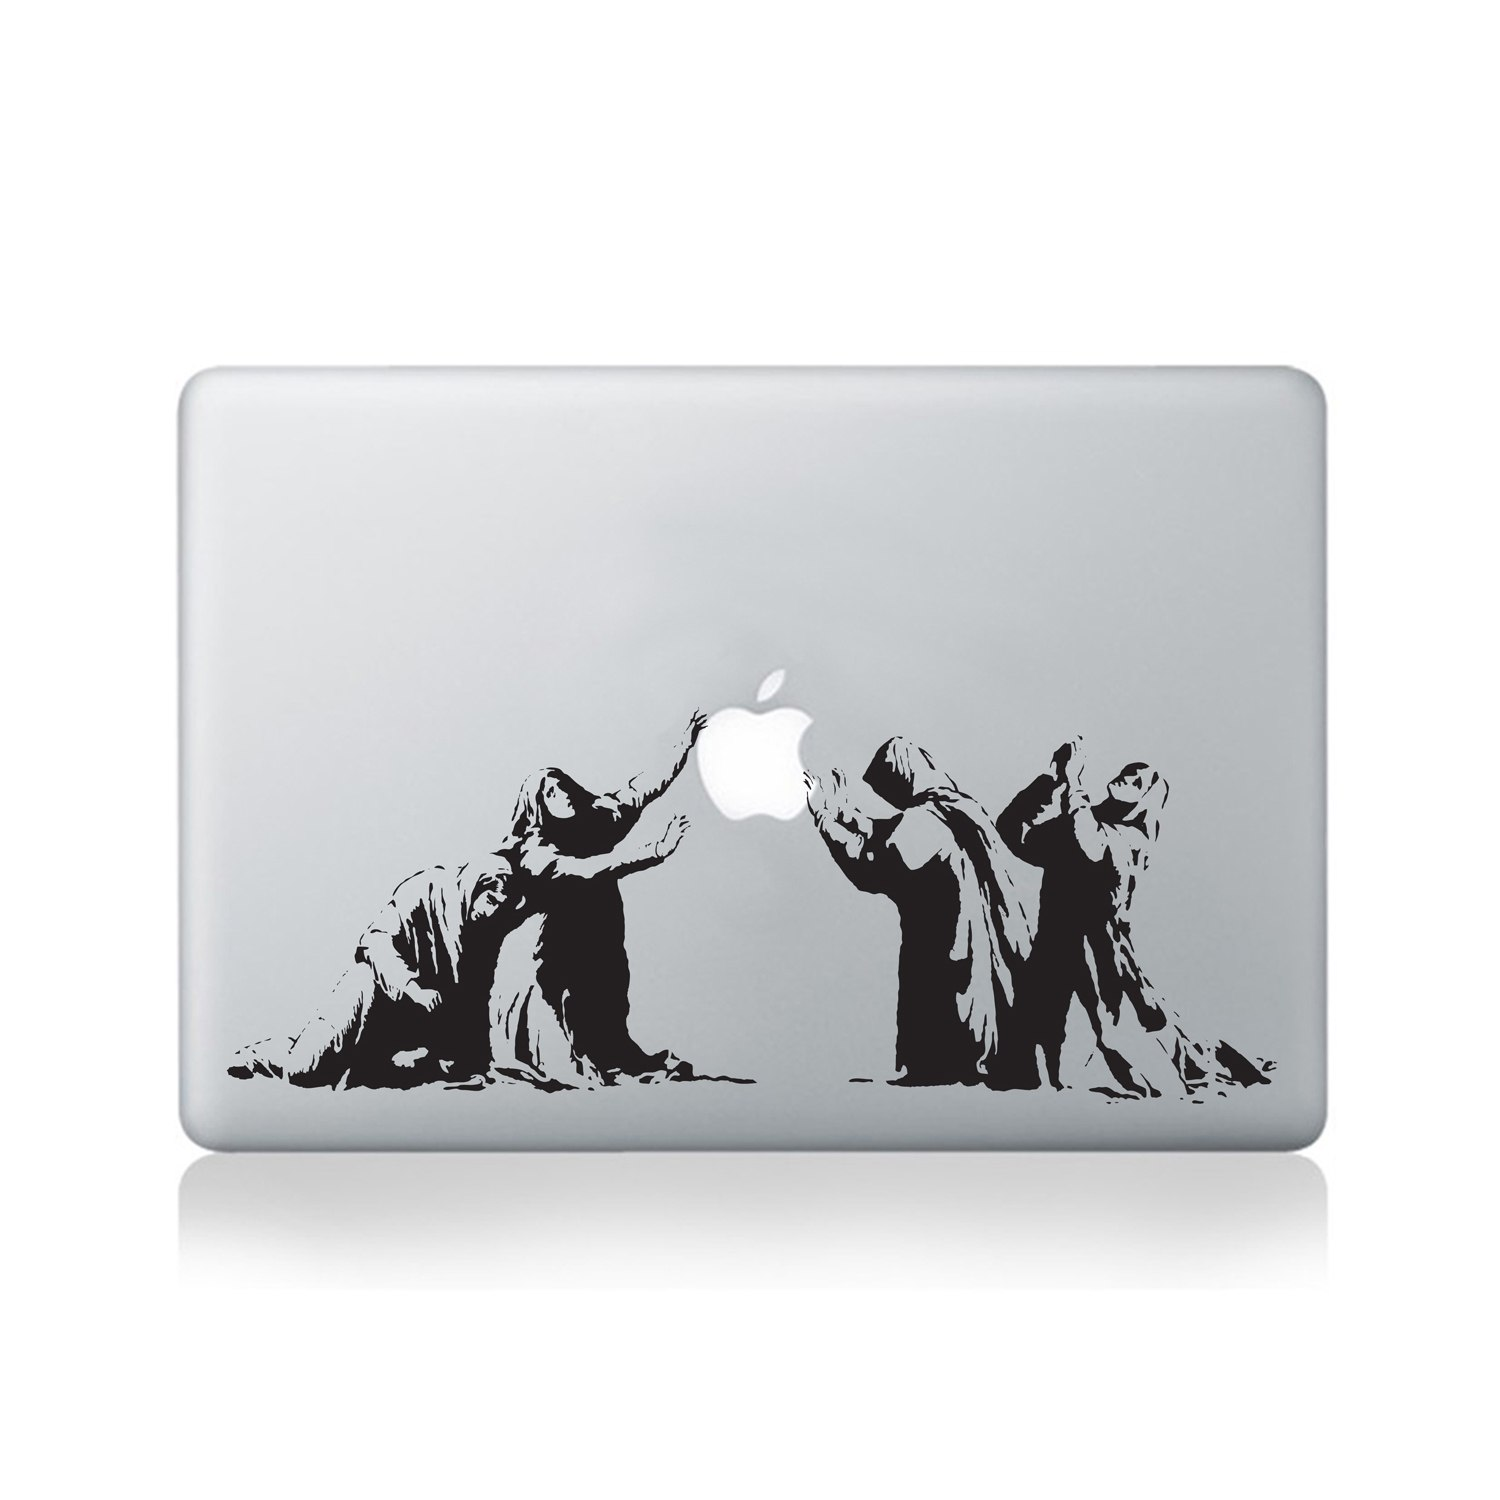 banksy macbook stickers wall art vinyl revolution macbook banksy sale